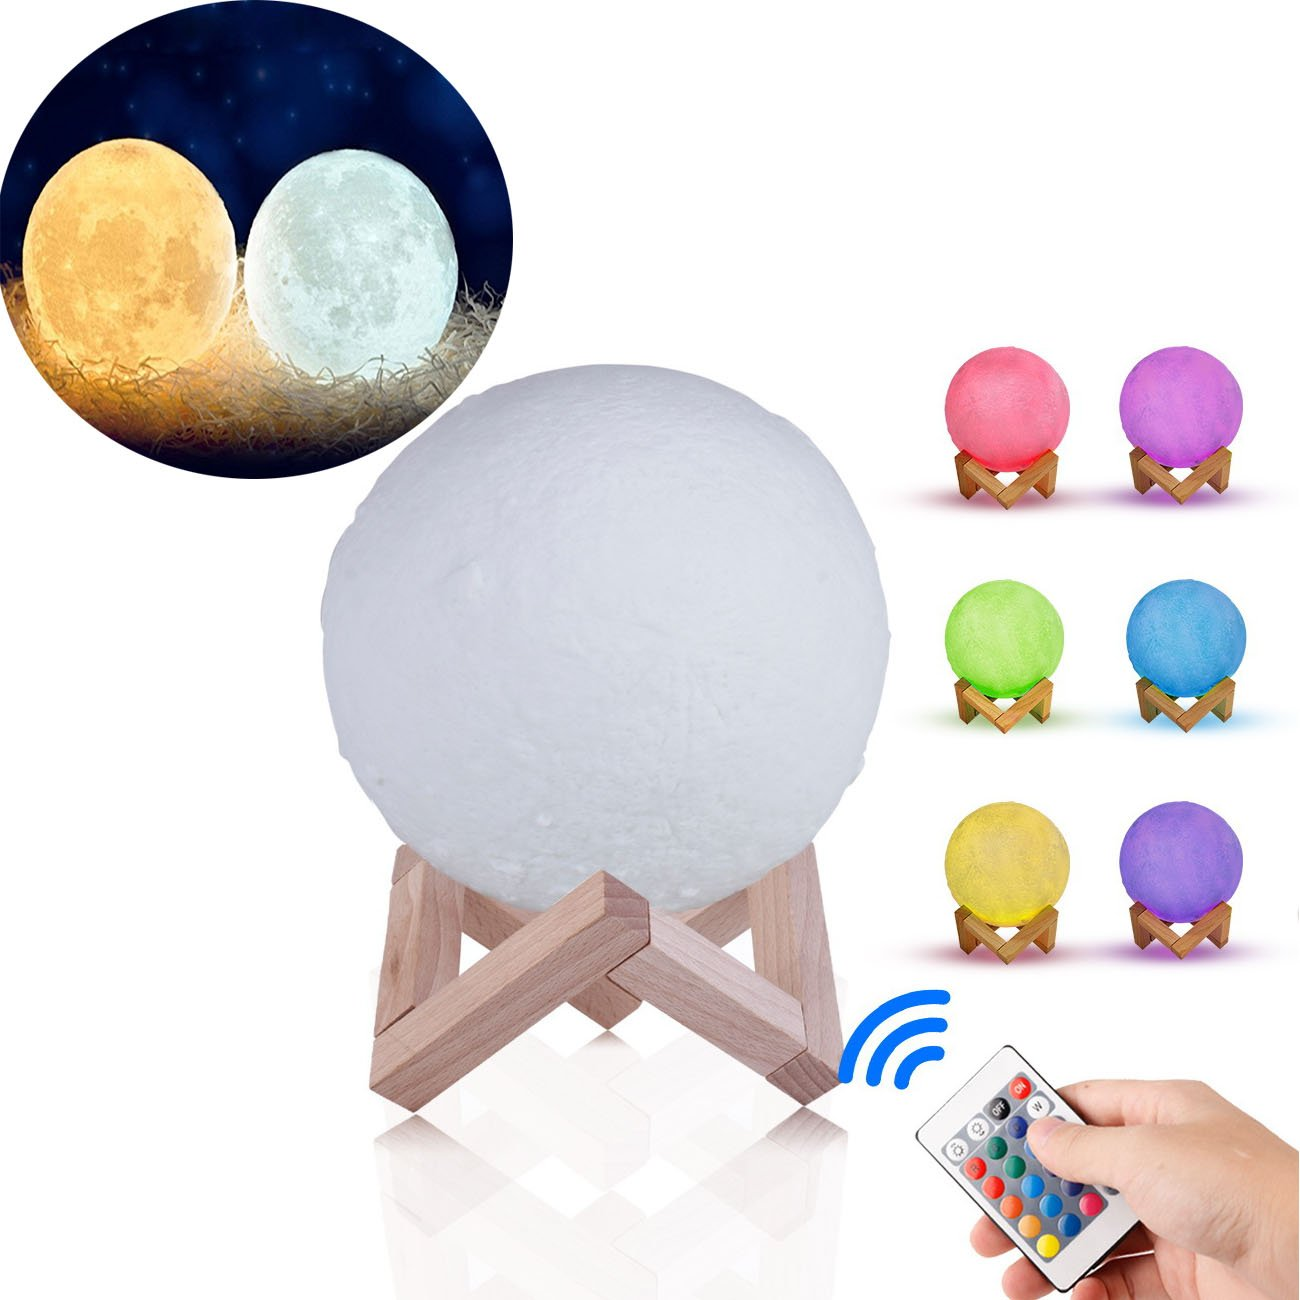 Moon Light 3D Print LED 16 Colors RGB Moon Shade Night Light Moon Lamp with Remote & Touch Control with USB Charging Moon Decor Lunar Night Light with Wooden Mount Moon Gift